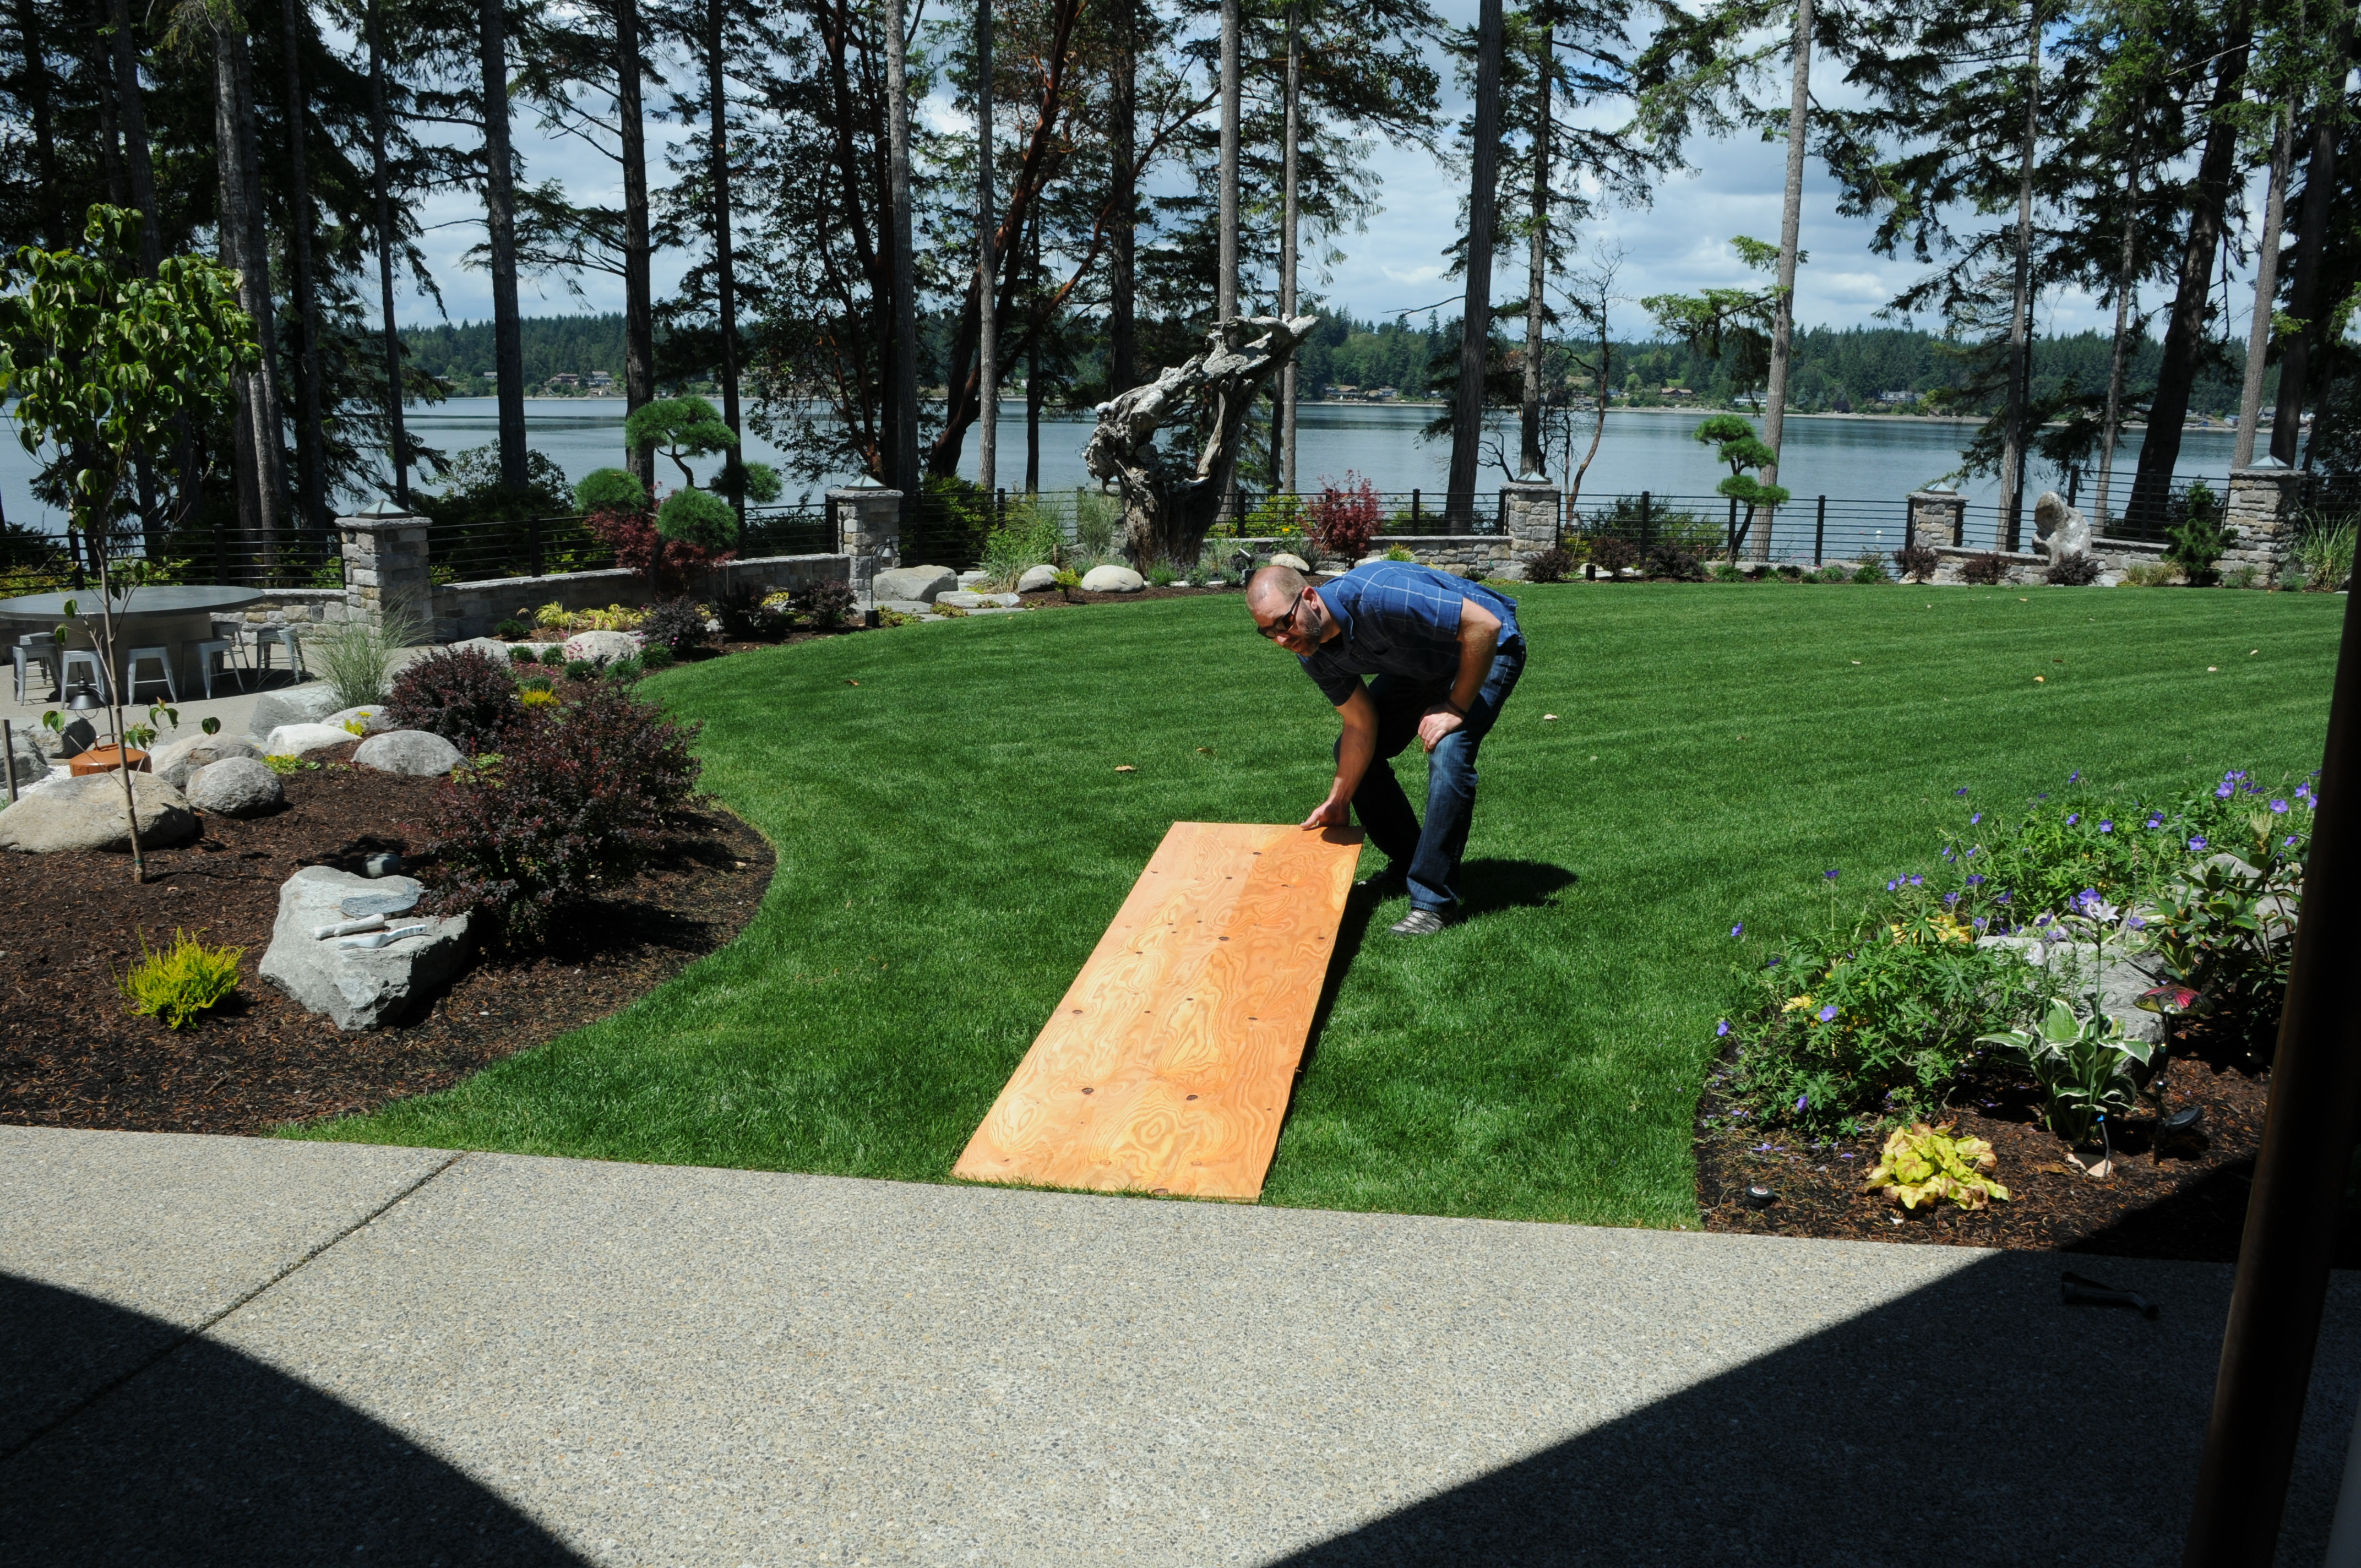 Man placing 2 foot by 8 foot board on lawn